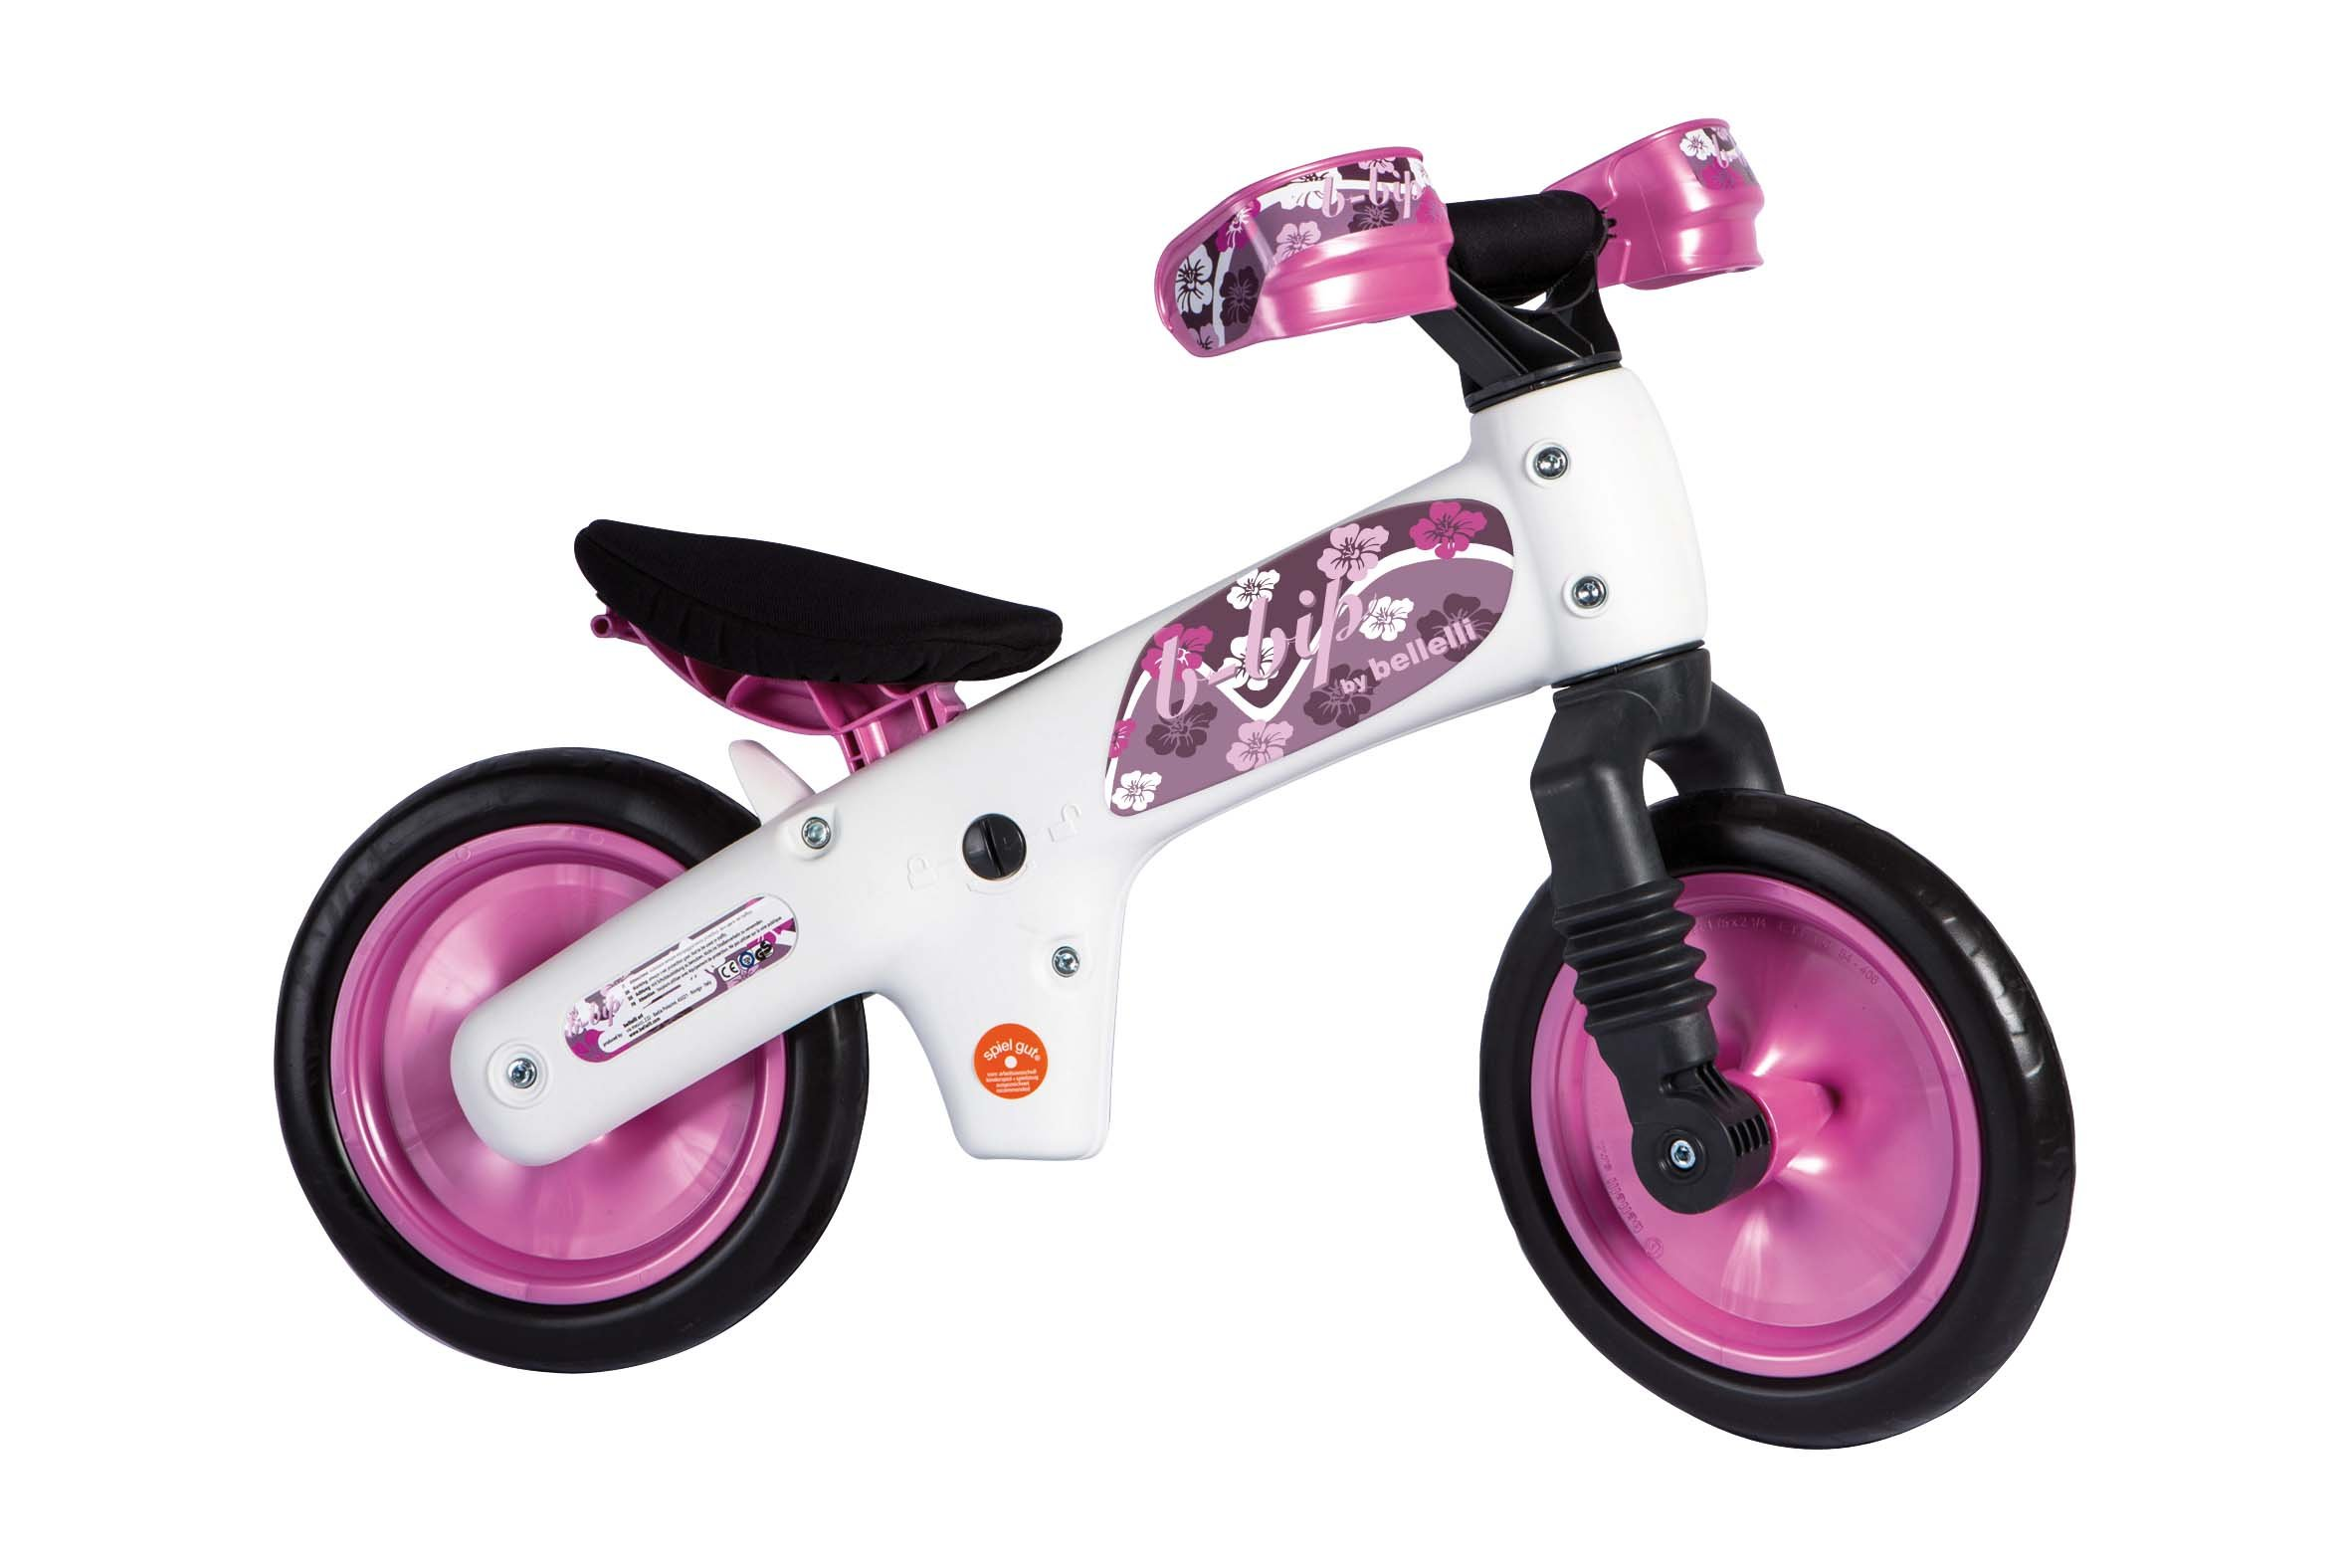 Bellelli Balance Bike with Adjustable Seat - for Ages 2 to 5 years (Pink)